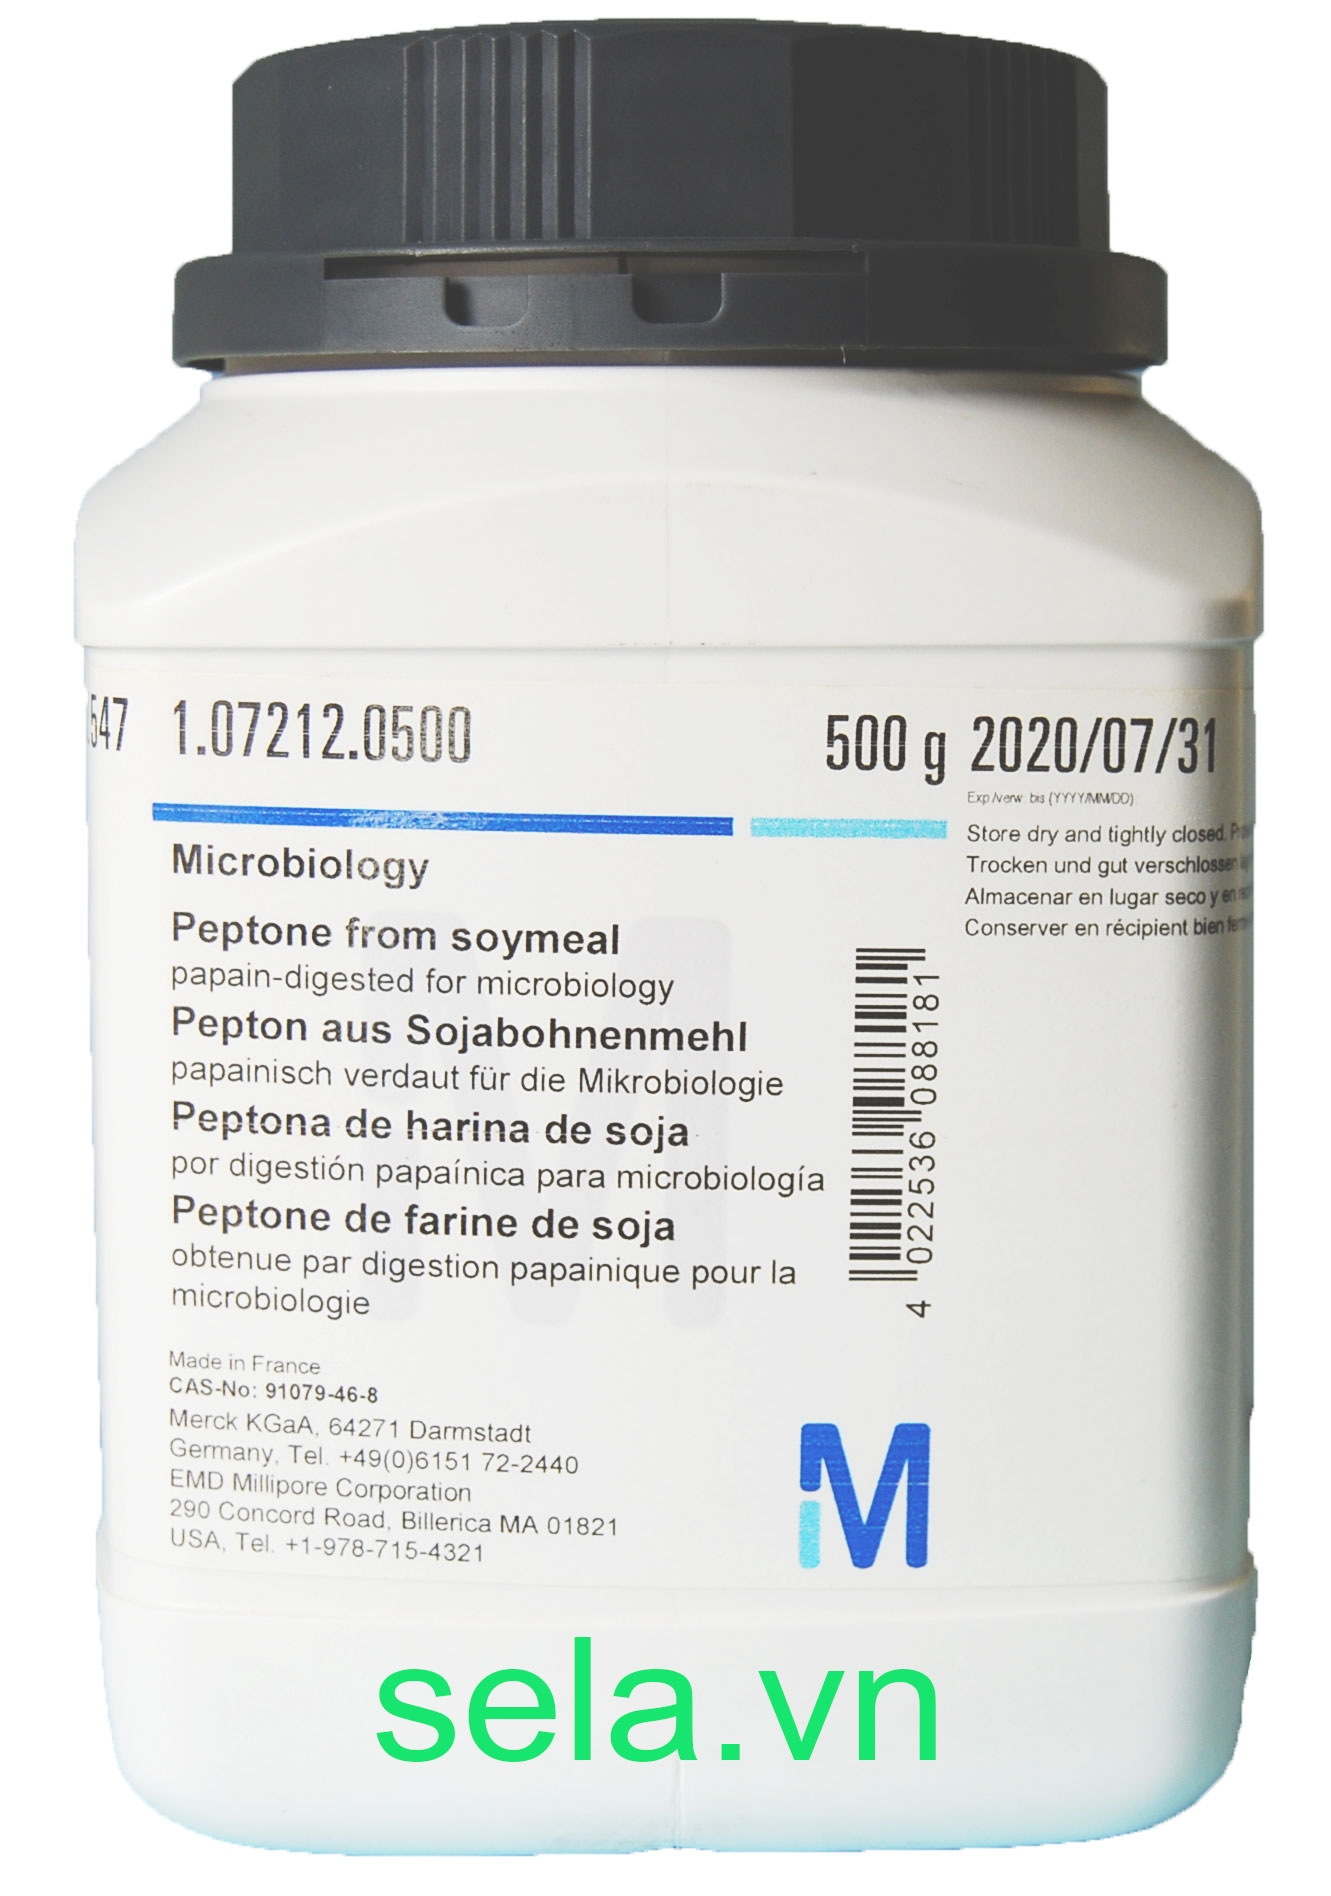 Peptone from soymeal papain-digested for microbiology